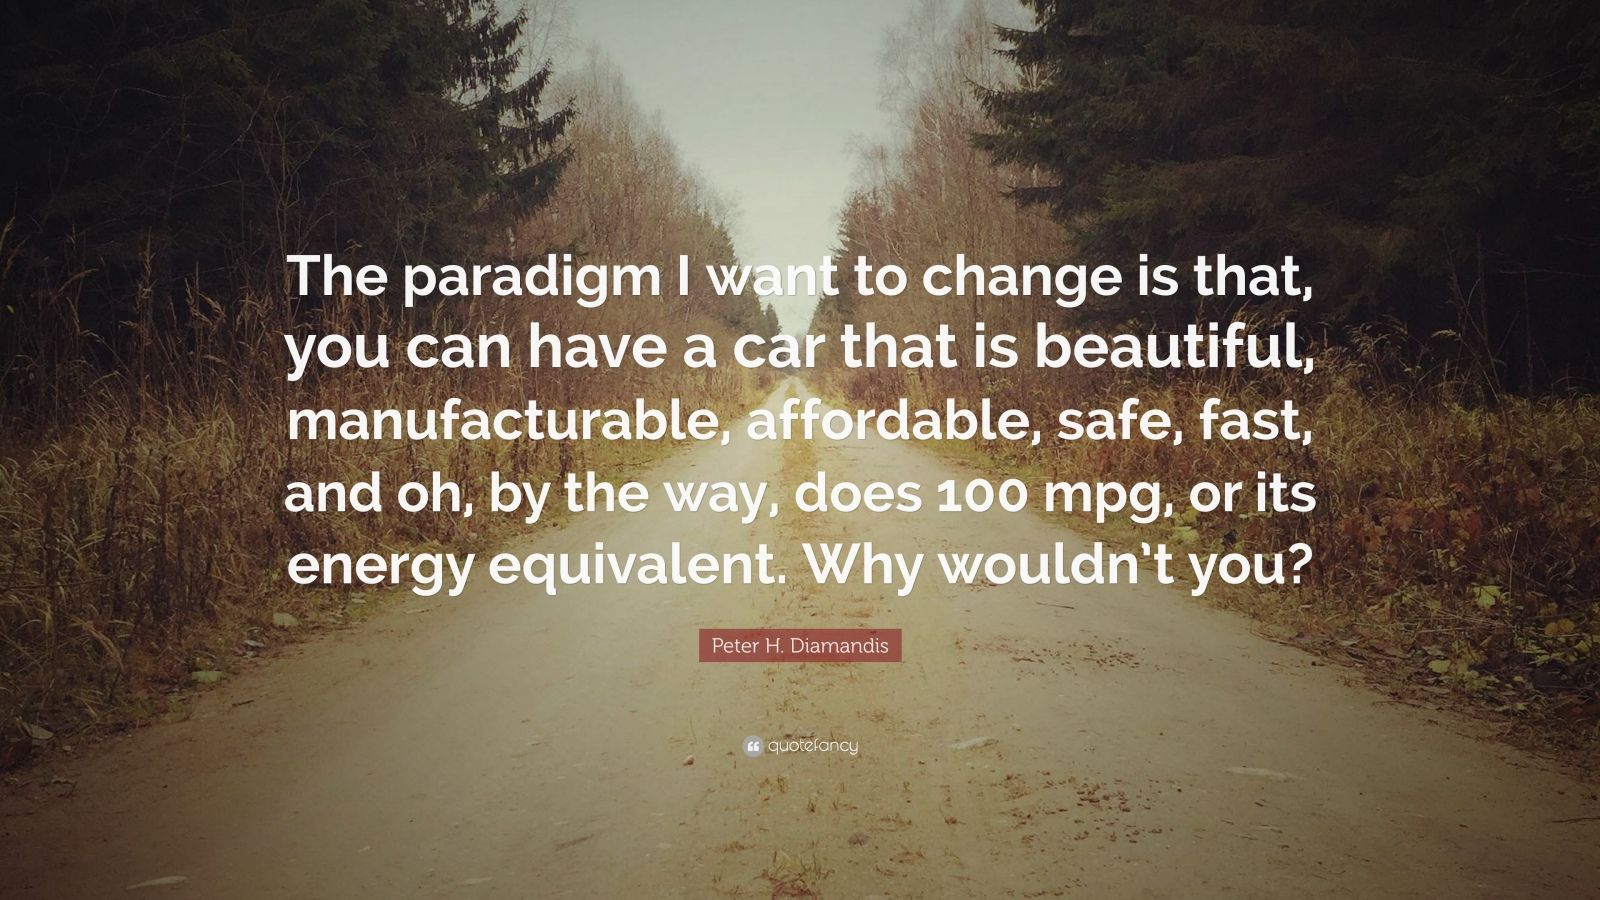 """Peter H. Diamandis Quote: """"The paradigm I want to change is that, you can have a car that is beautiful, manufacturable, affordable, safe, fast, and oh, by the way, does 100 mpg, or its energy equivalent. Why wouldn't you?"""""""